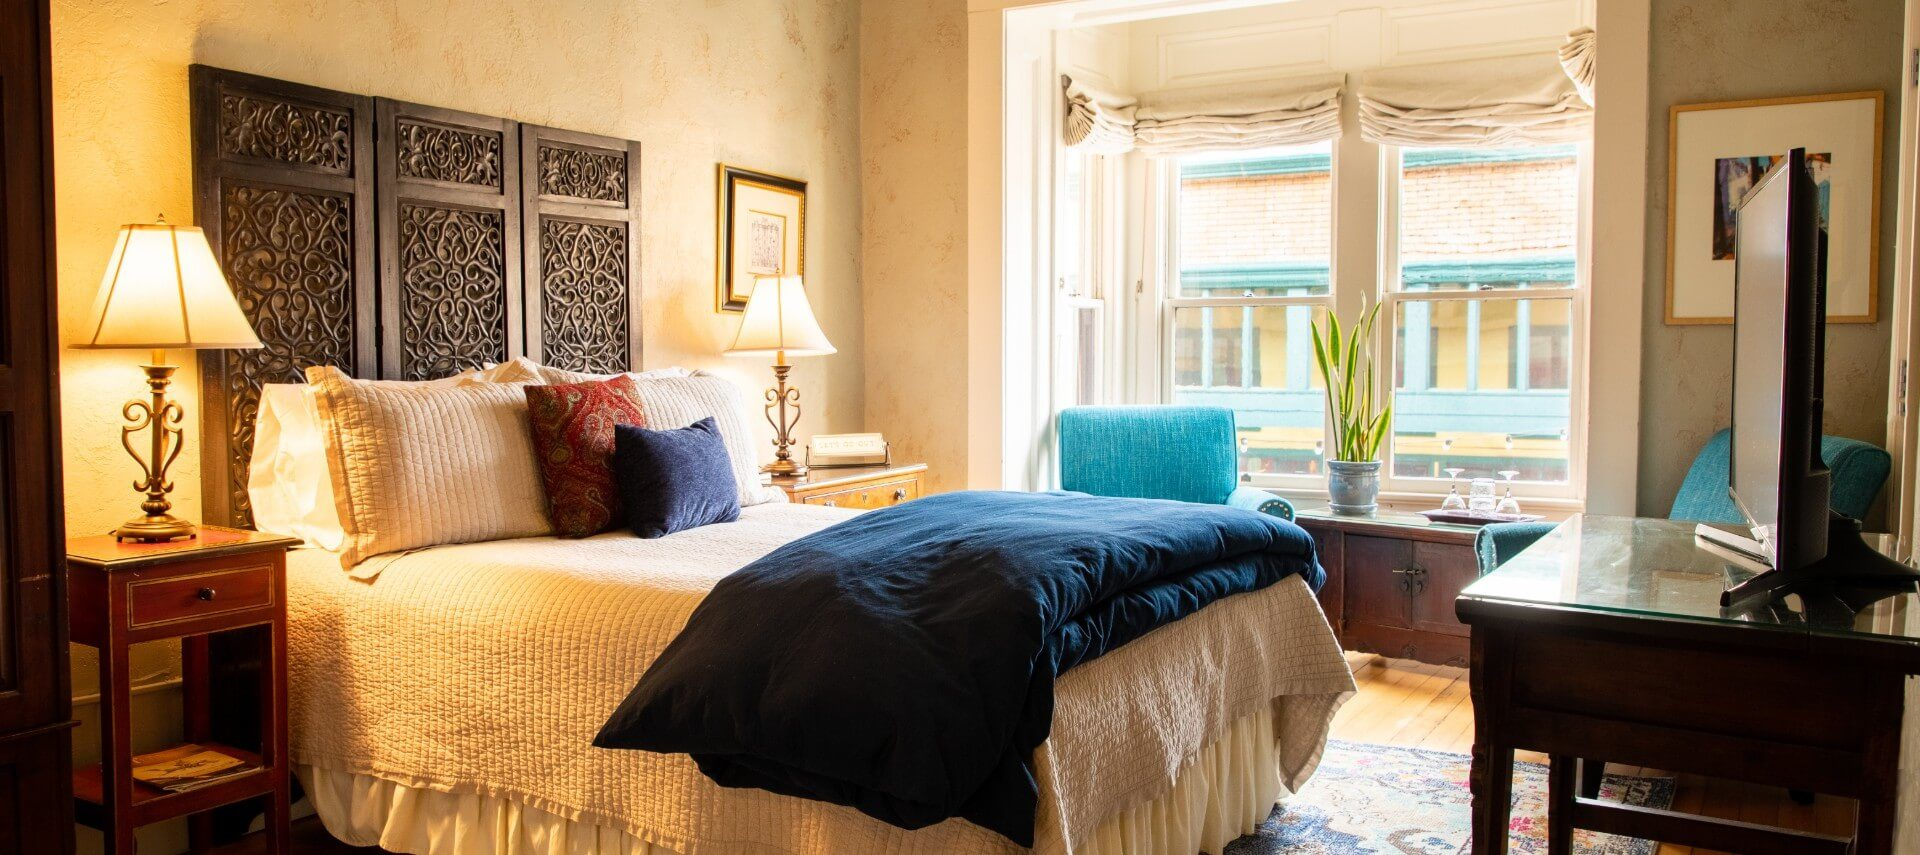 Luxurious bed with decorative headboard in a room with bright windows, sitting chairs and console with TV